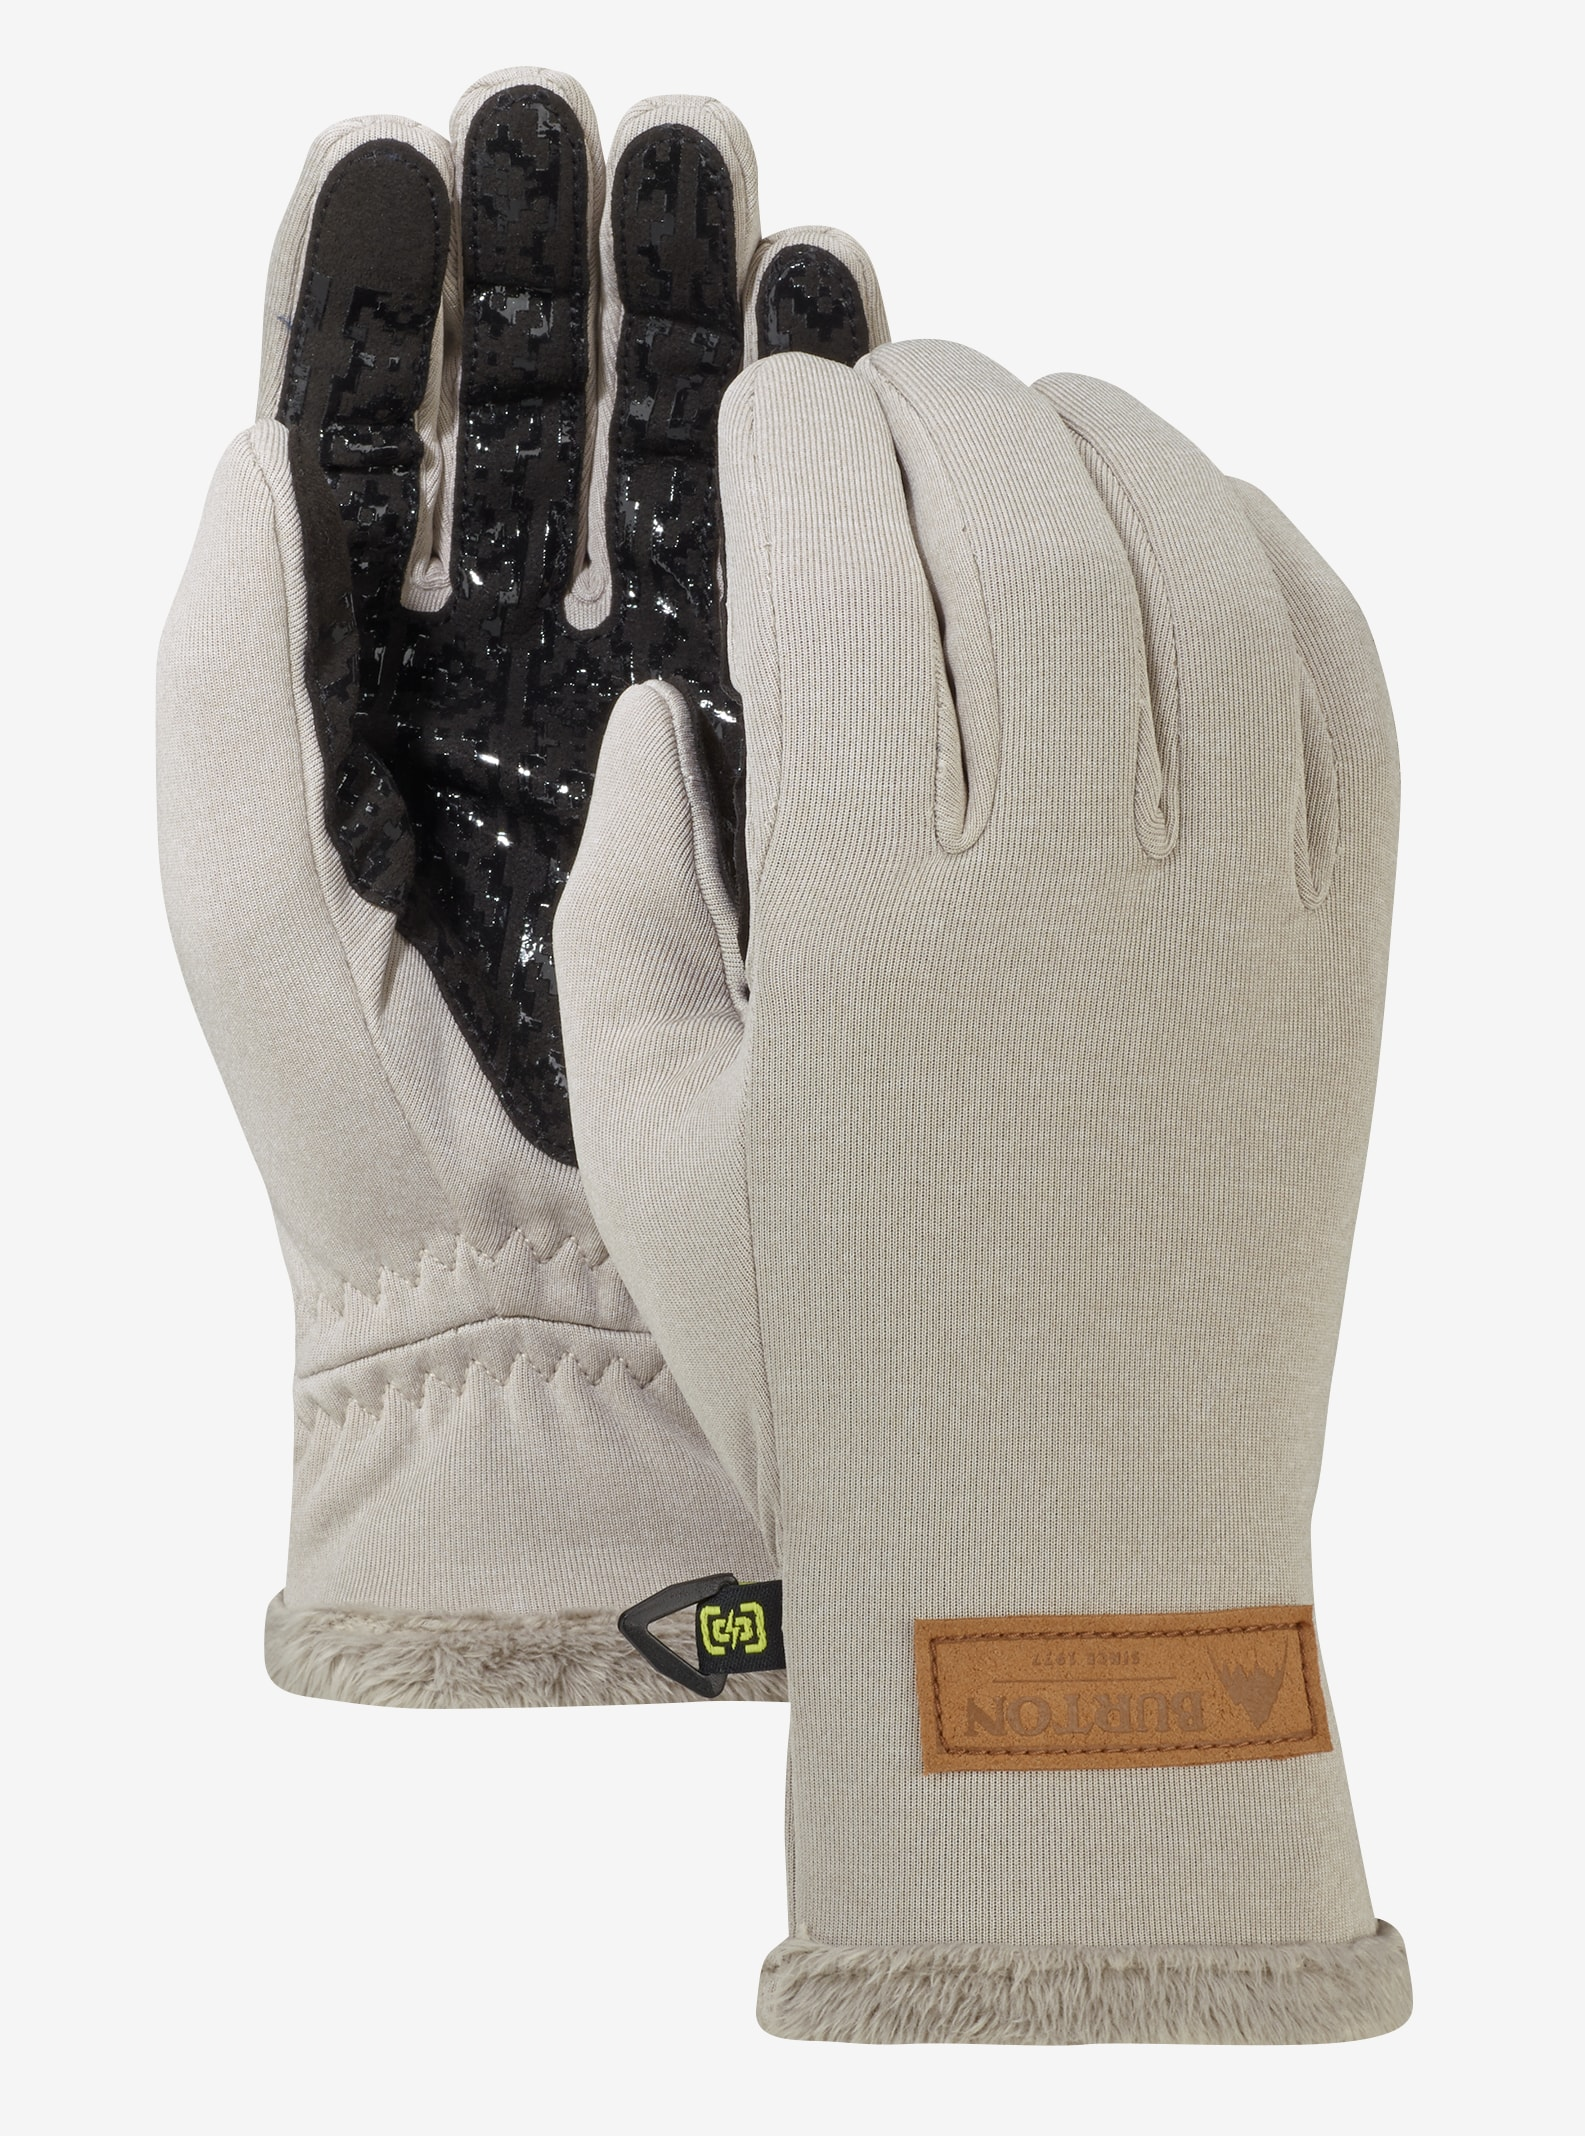 Women's Burton Sapphire Glove shown in Dove Heather